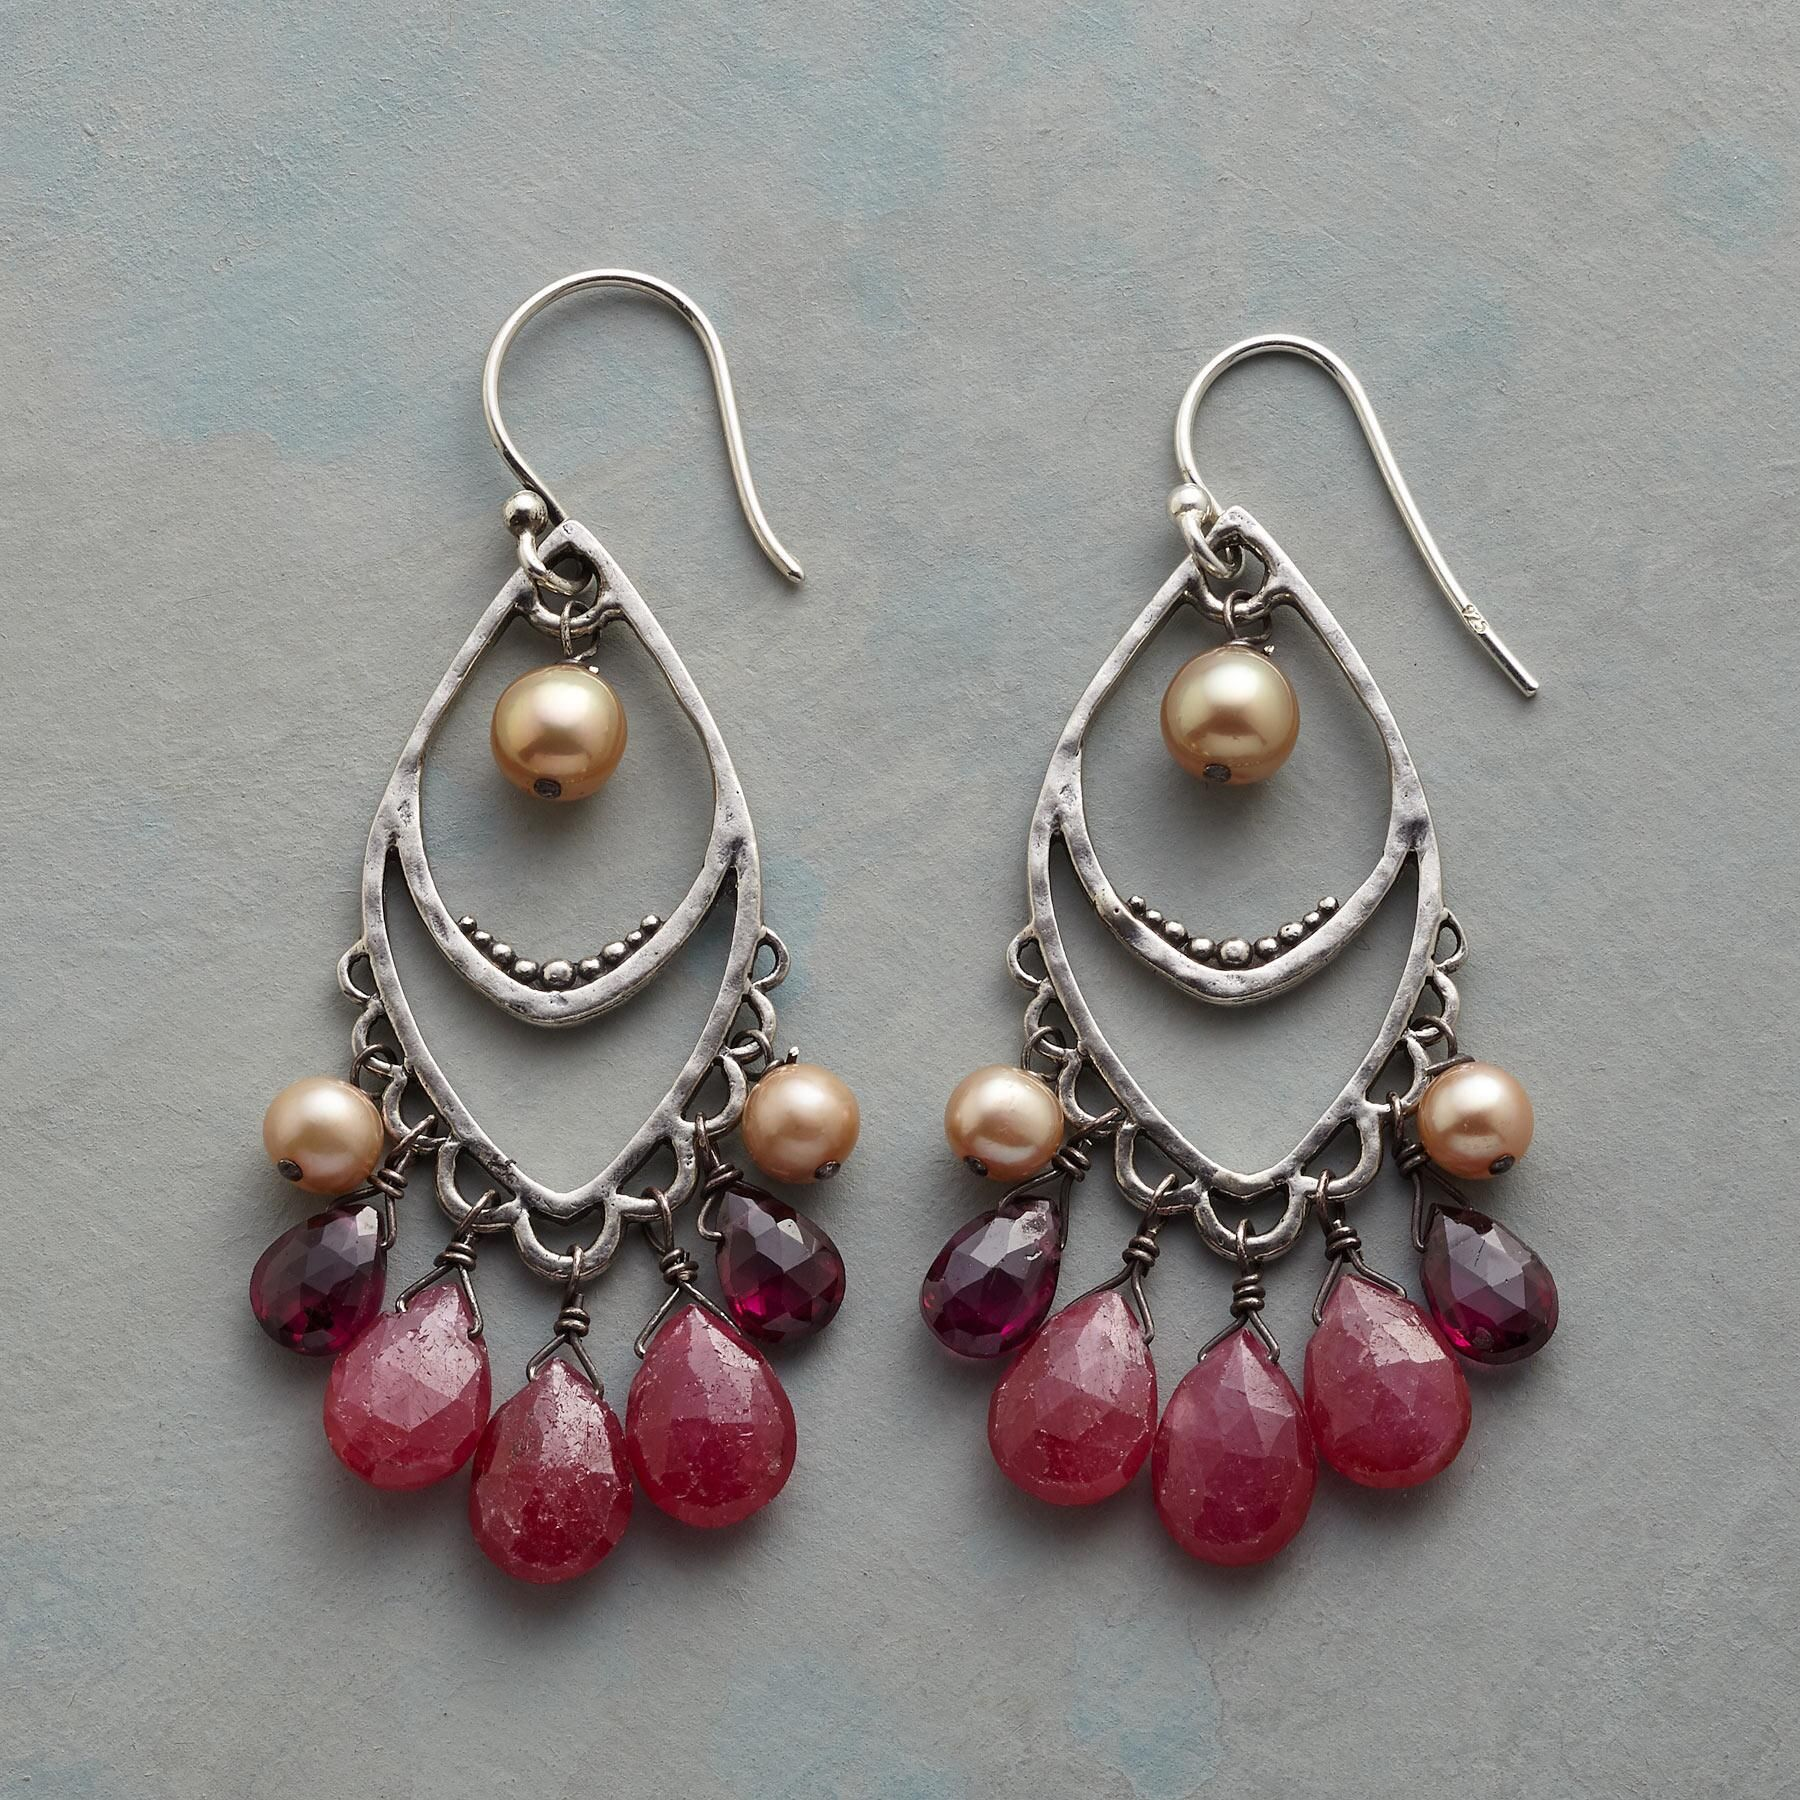 Spanish Nights Earrings Ruby Rhodalite Garnet And Champagne Pearls In Handcrafted Sterling Silver With Lacy Edges Finely Beaded